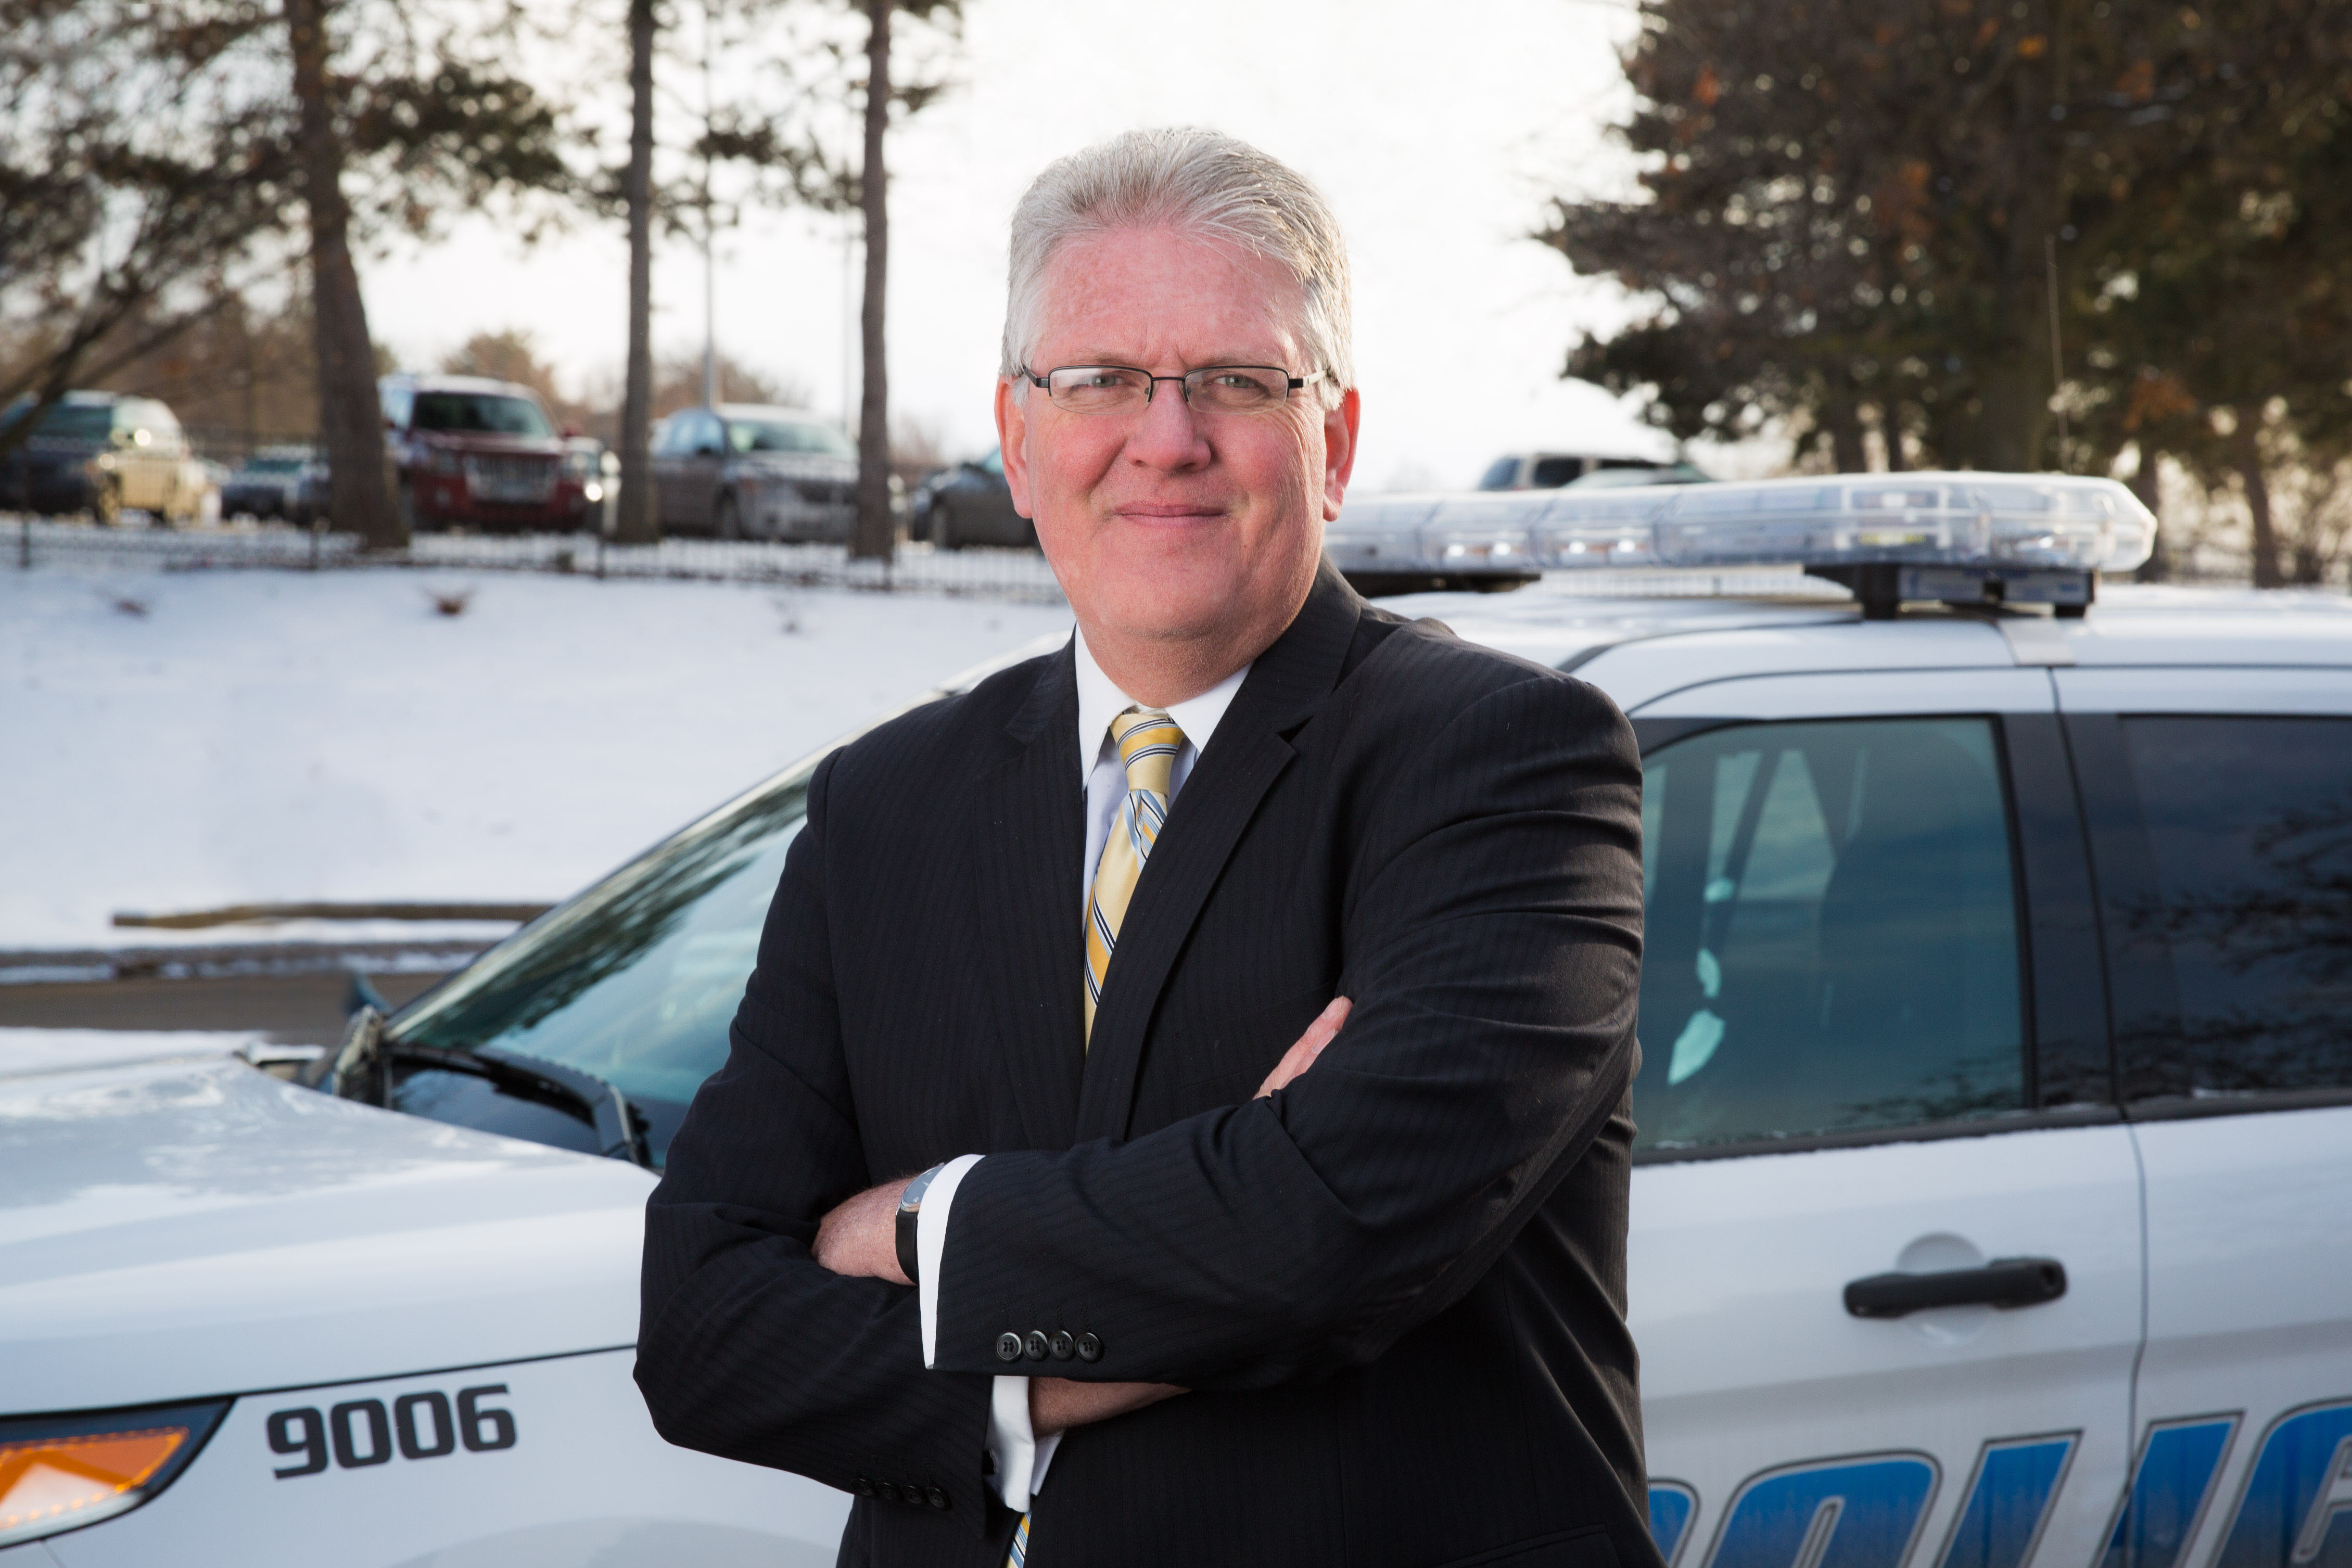 Thomas Kilcullen Officially Takes the Reins as SUNY Geneseo Police Chief